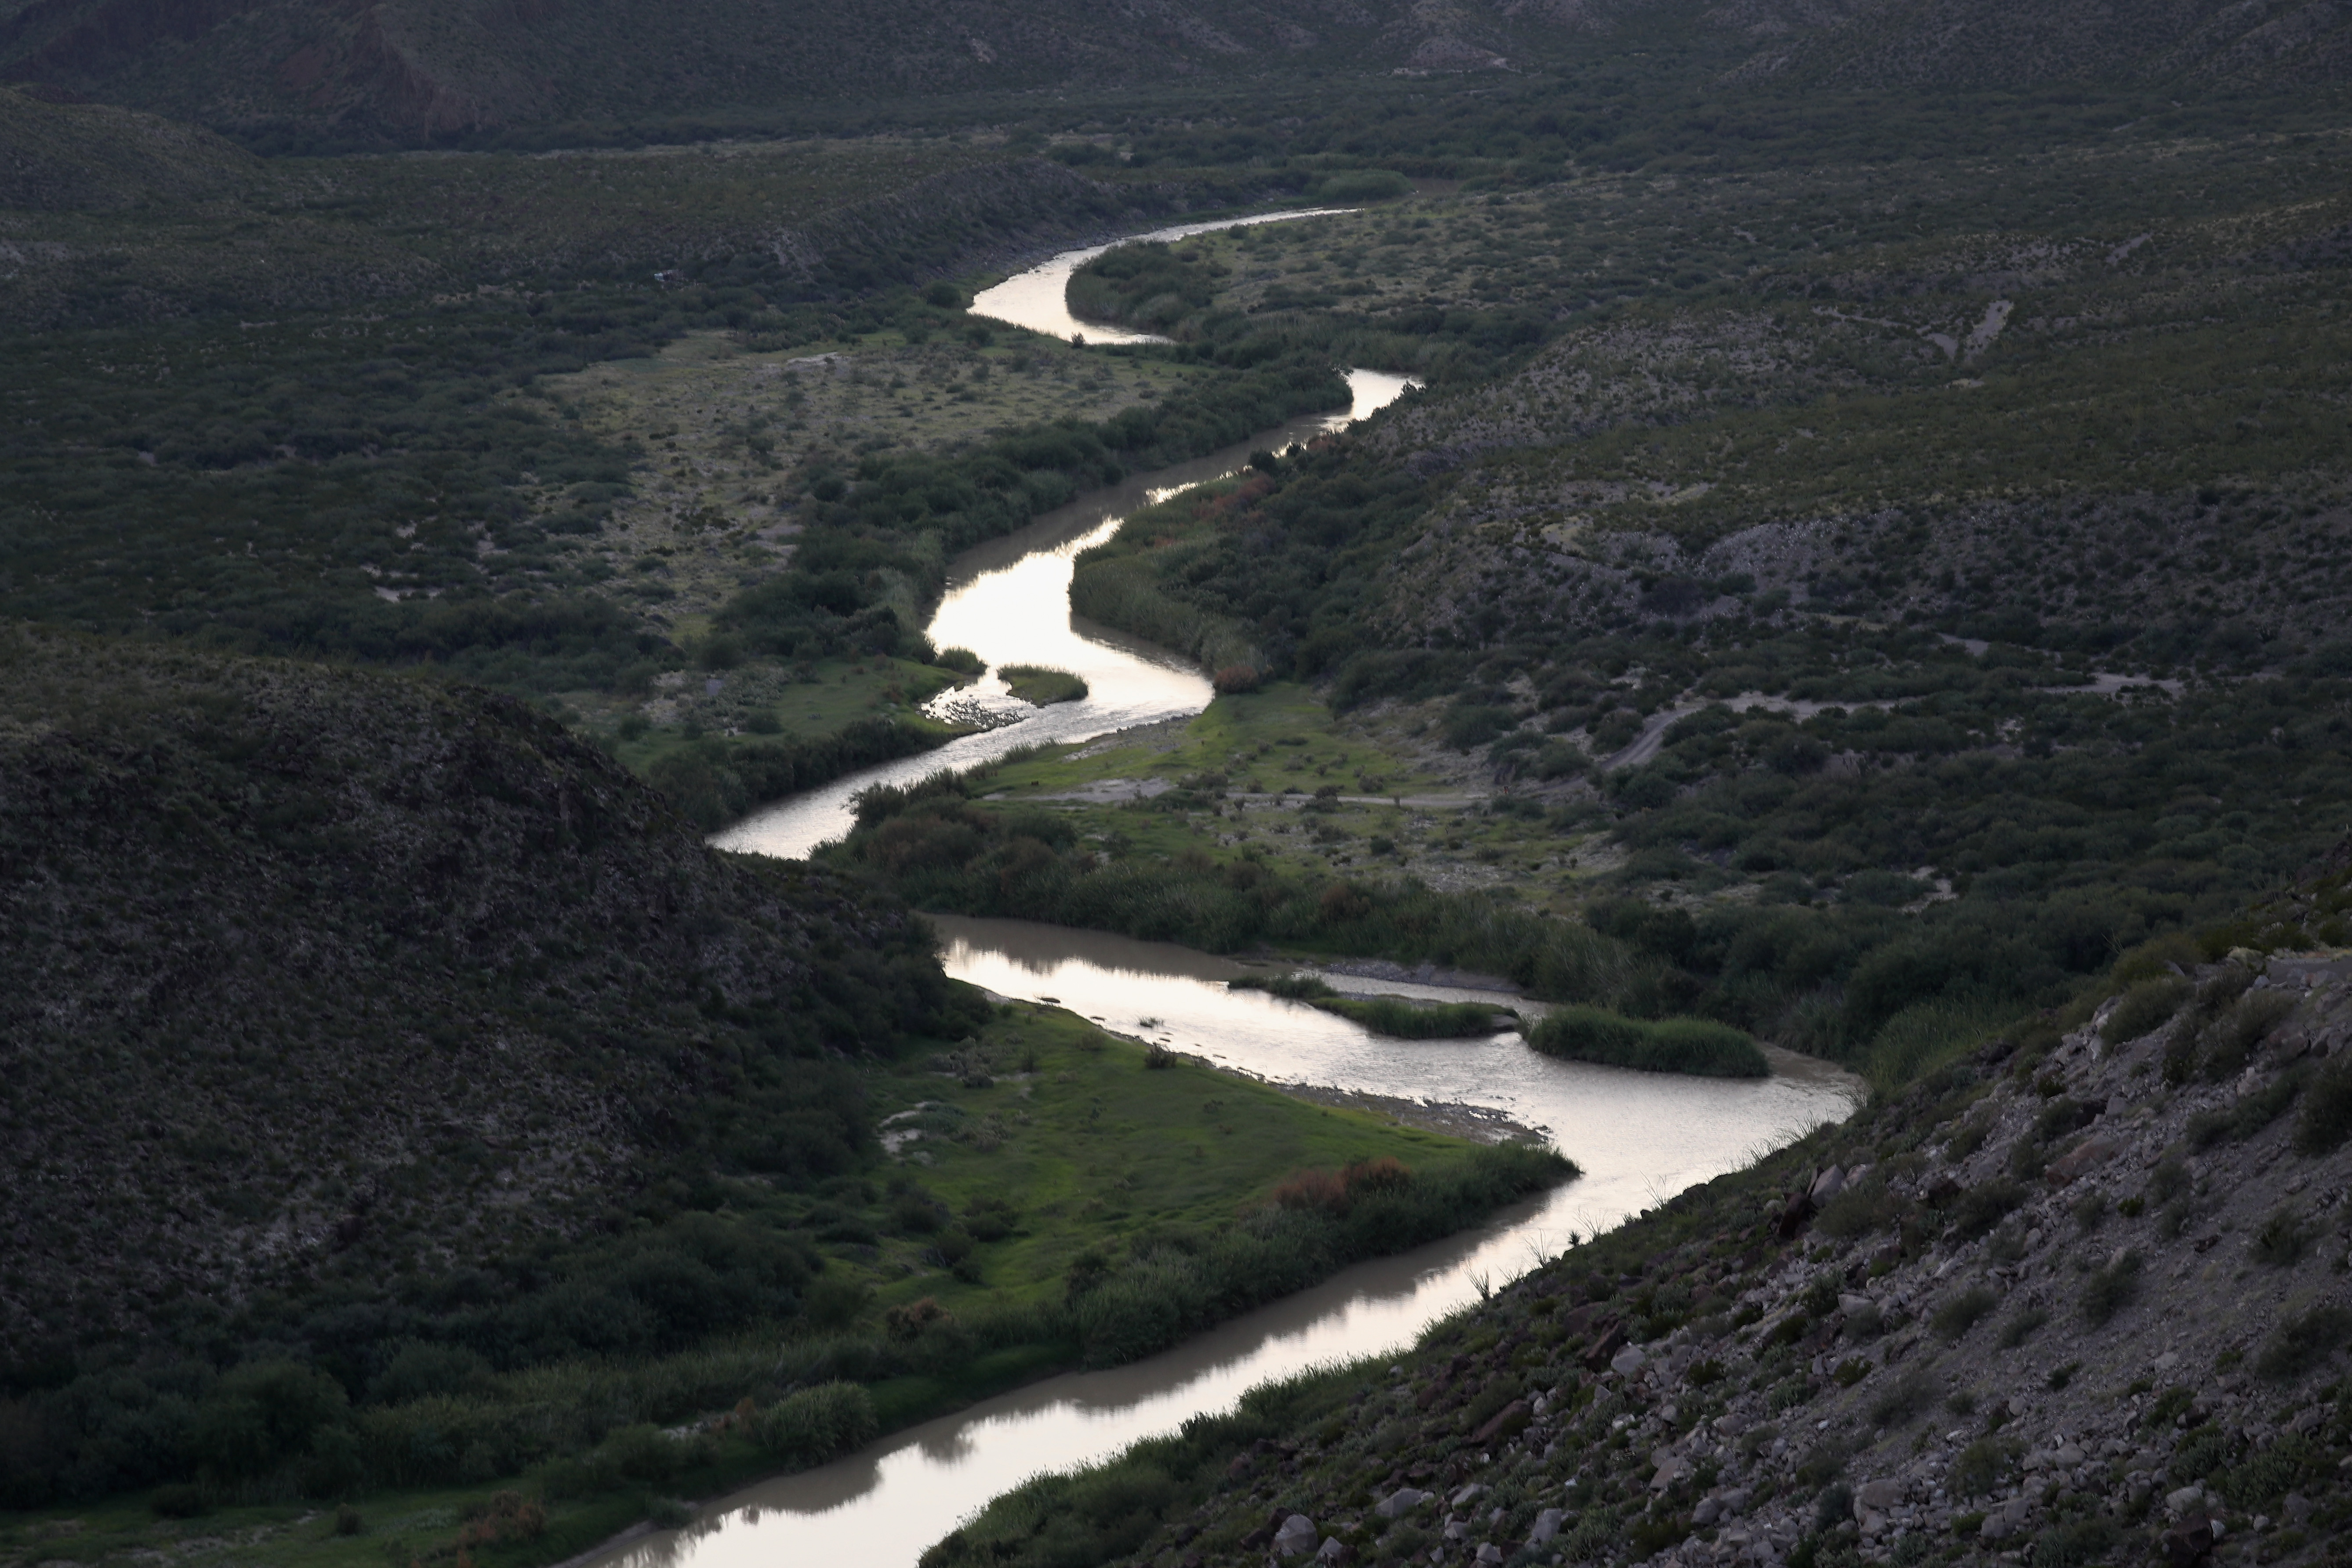 The Rio Grande forms a stretch of the U.S.-Mexico border on Oct. 15, 2016 in the Big Bend region of West Texas near Lajitas, Texas. Big Bend is a rugged, vast and remote region along the U.S.-Mexico border and includes the Big Bend National Park.